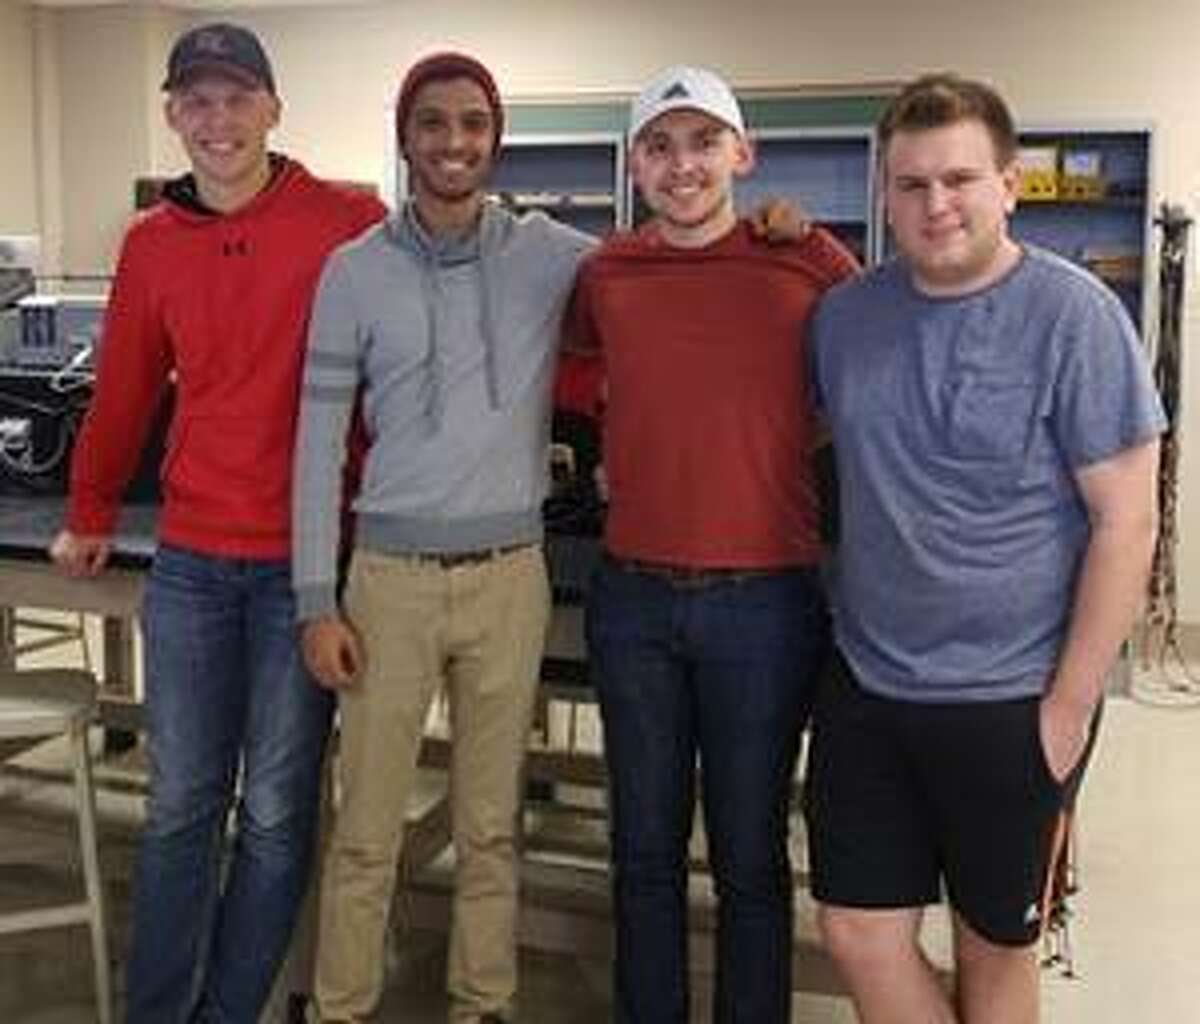 SIUE students Tyler Friedel, Justin Haque, Corwin Fritts and Kaleb Cole competed in the IEEE Black Box competition held at Missouri S&T.